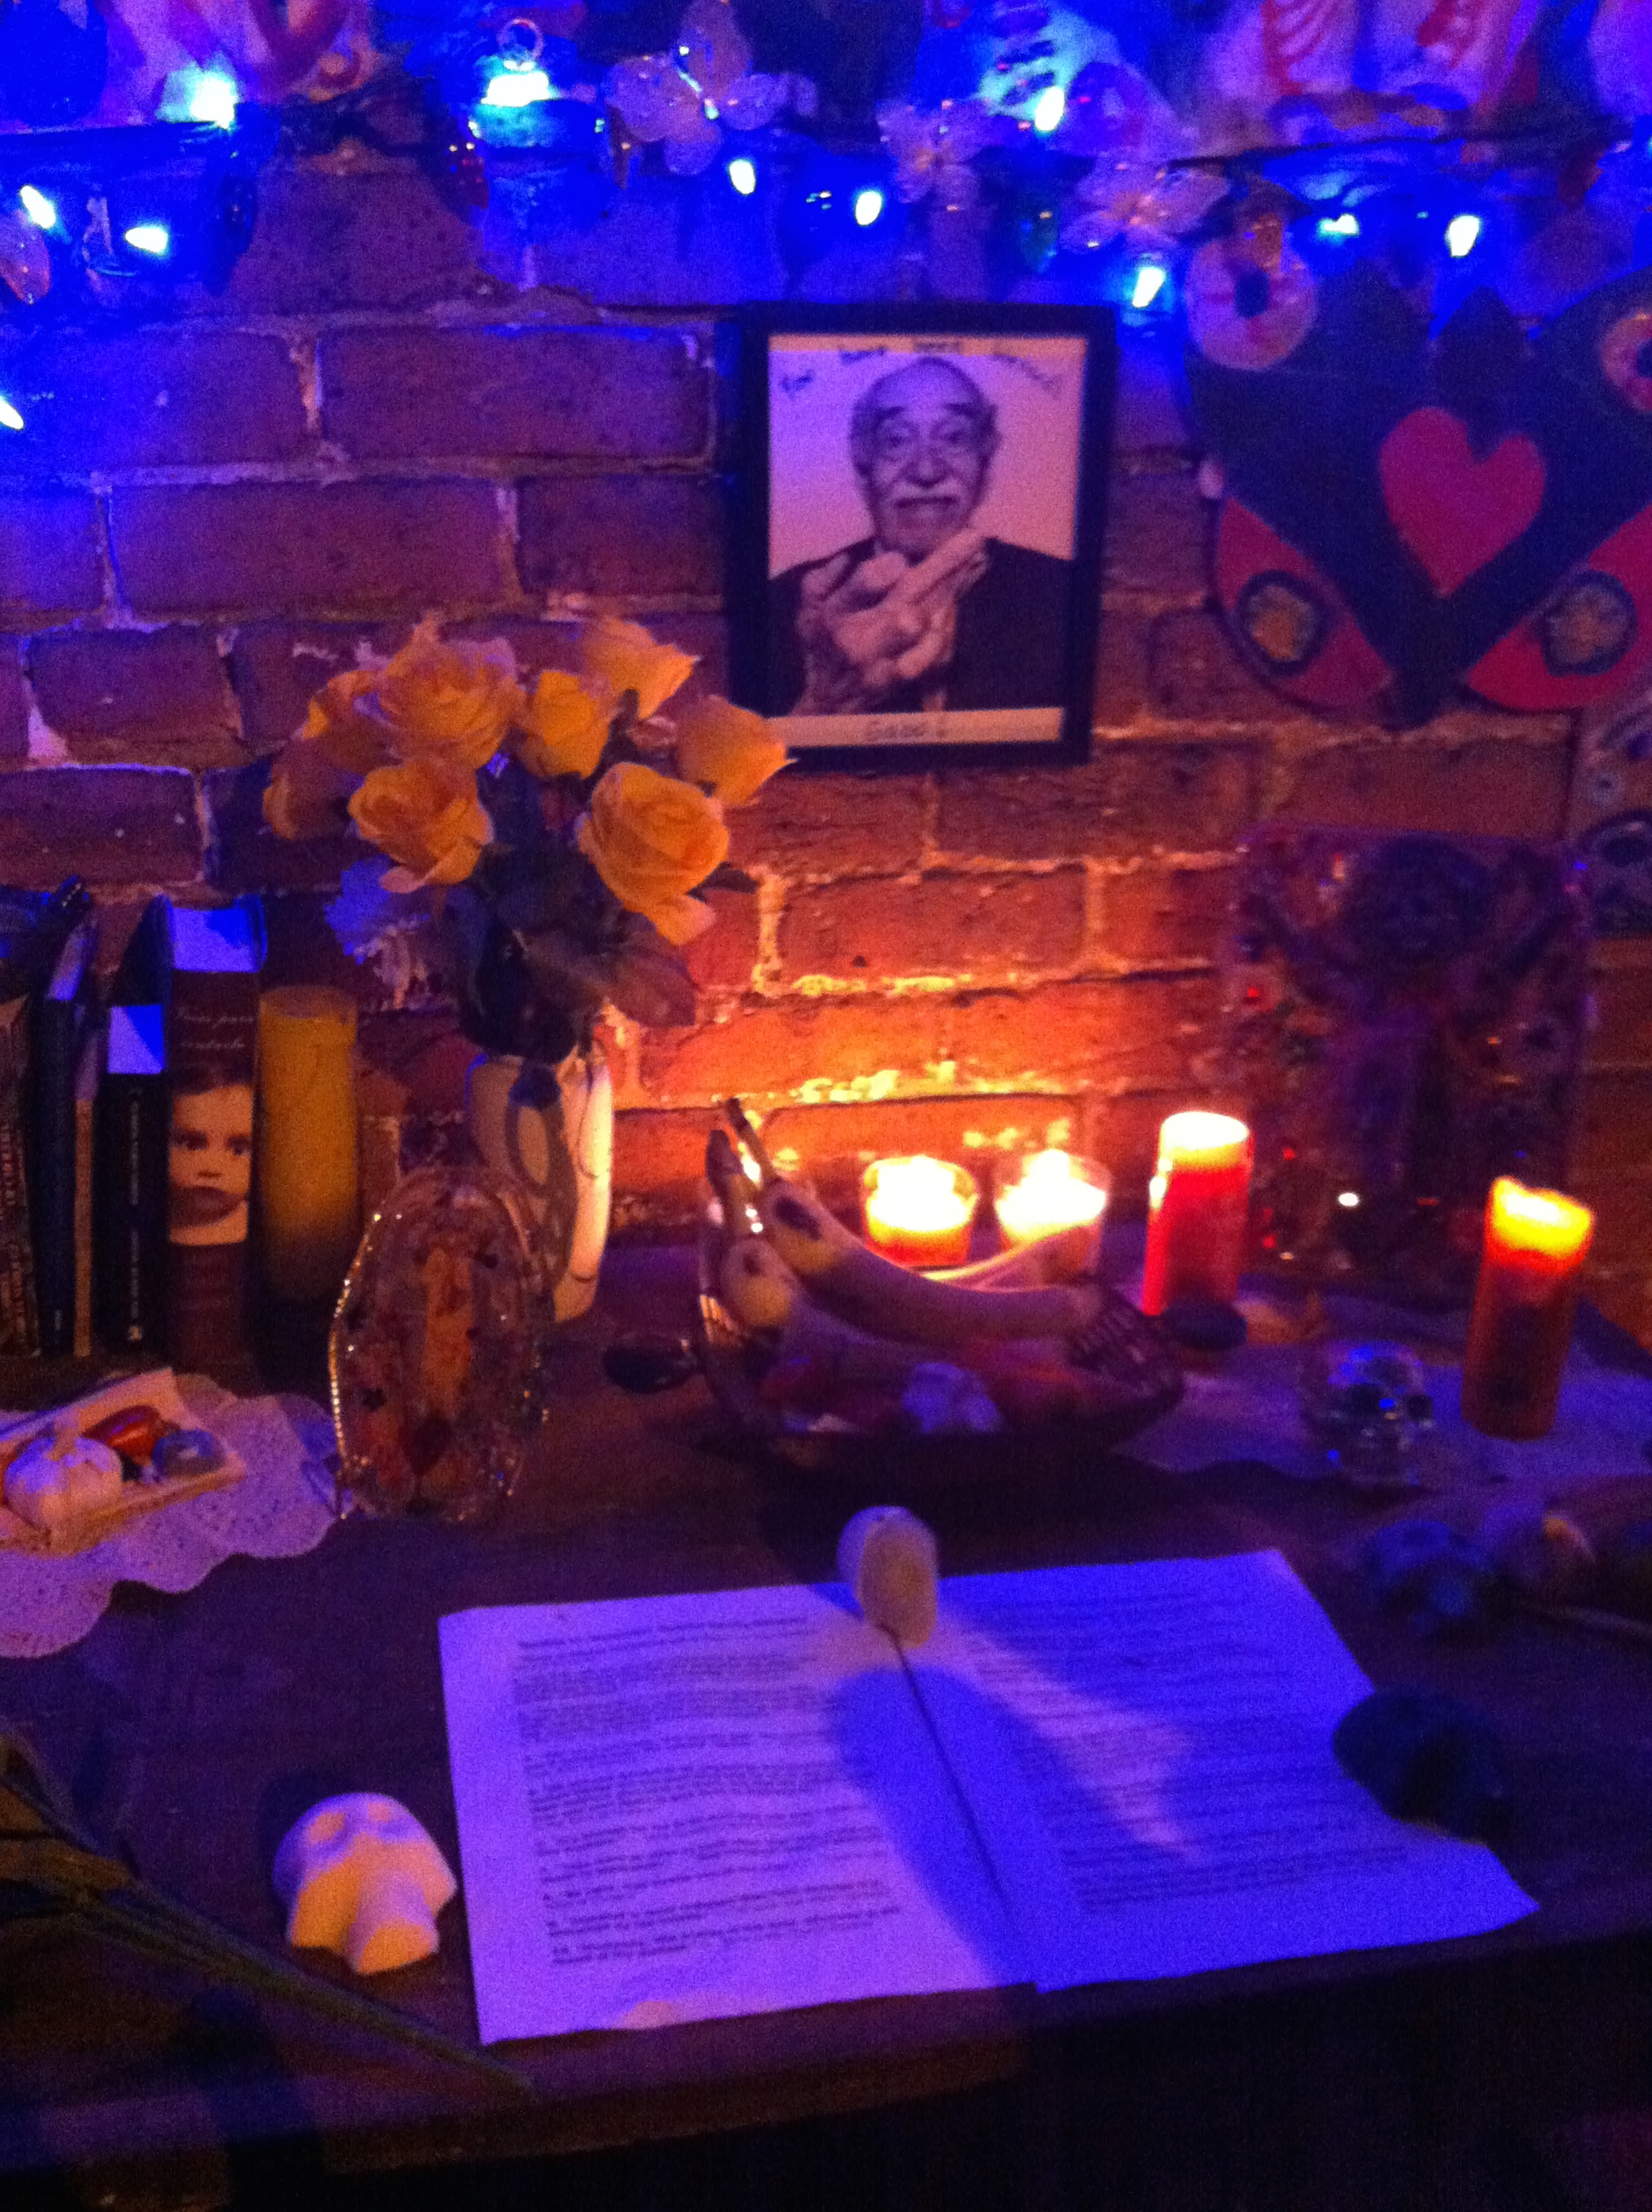 The ofrenda, or offering, to Gabriel Garcia Marquez at Dia de Los Muertos. The ofrenda consisted of a writing desk on which sat several of his books, candles, yellow roses, sugar skulls, pages of his quotes, and some of his favorite foods.